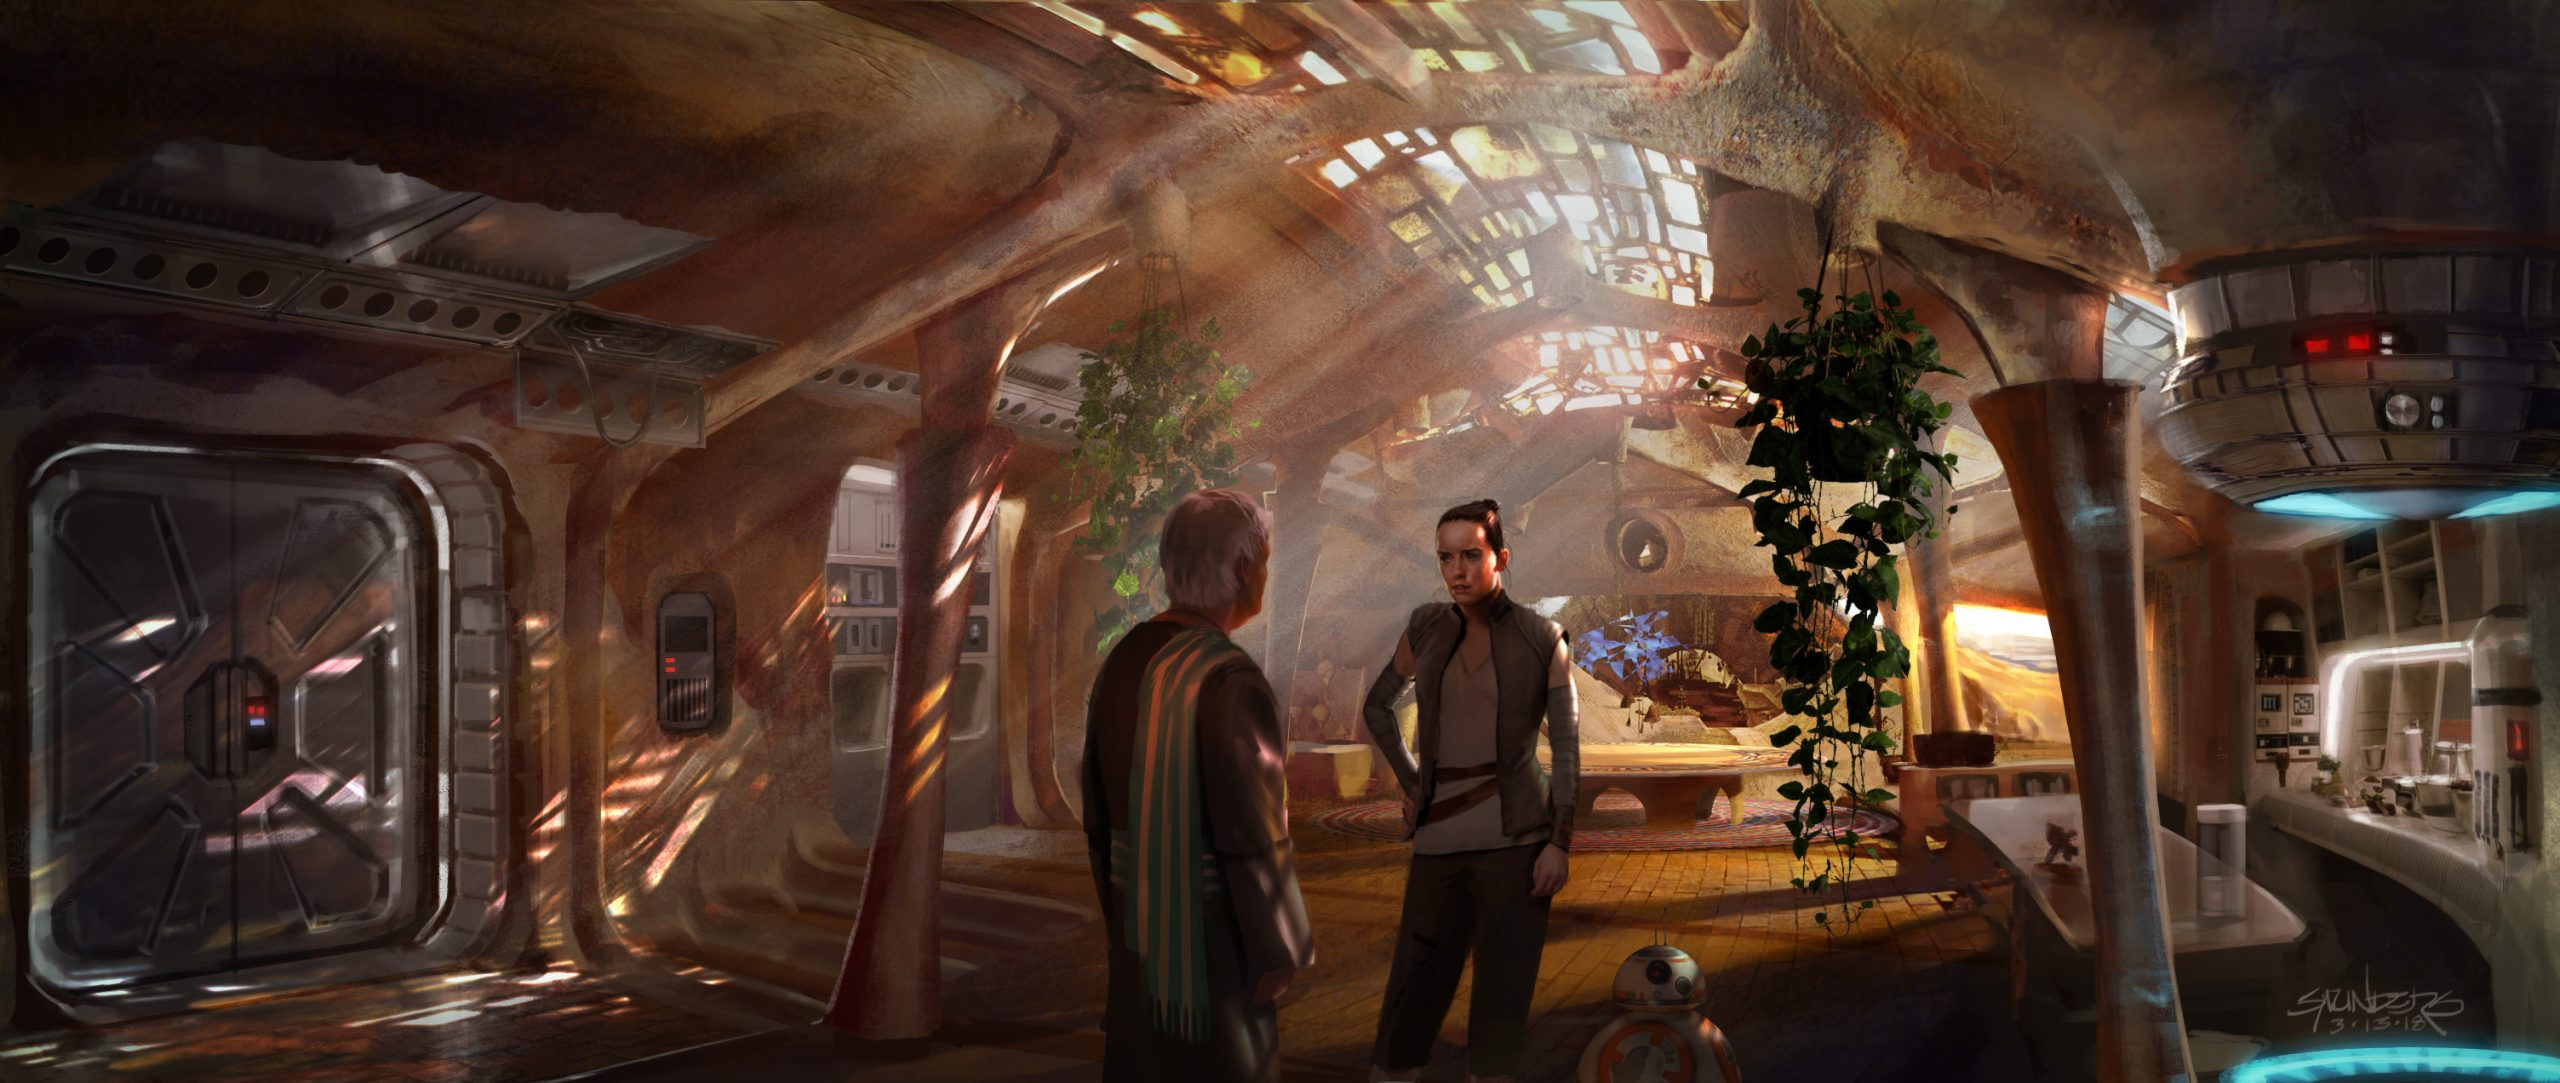 Concept art for an early draft of Star Wars: The Rise of Skywalker